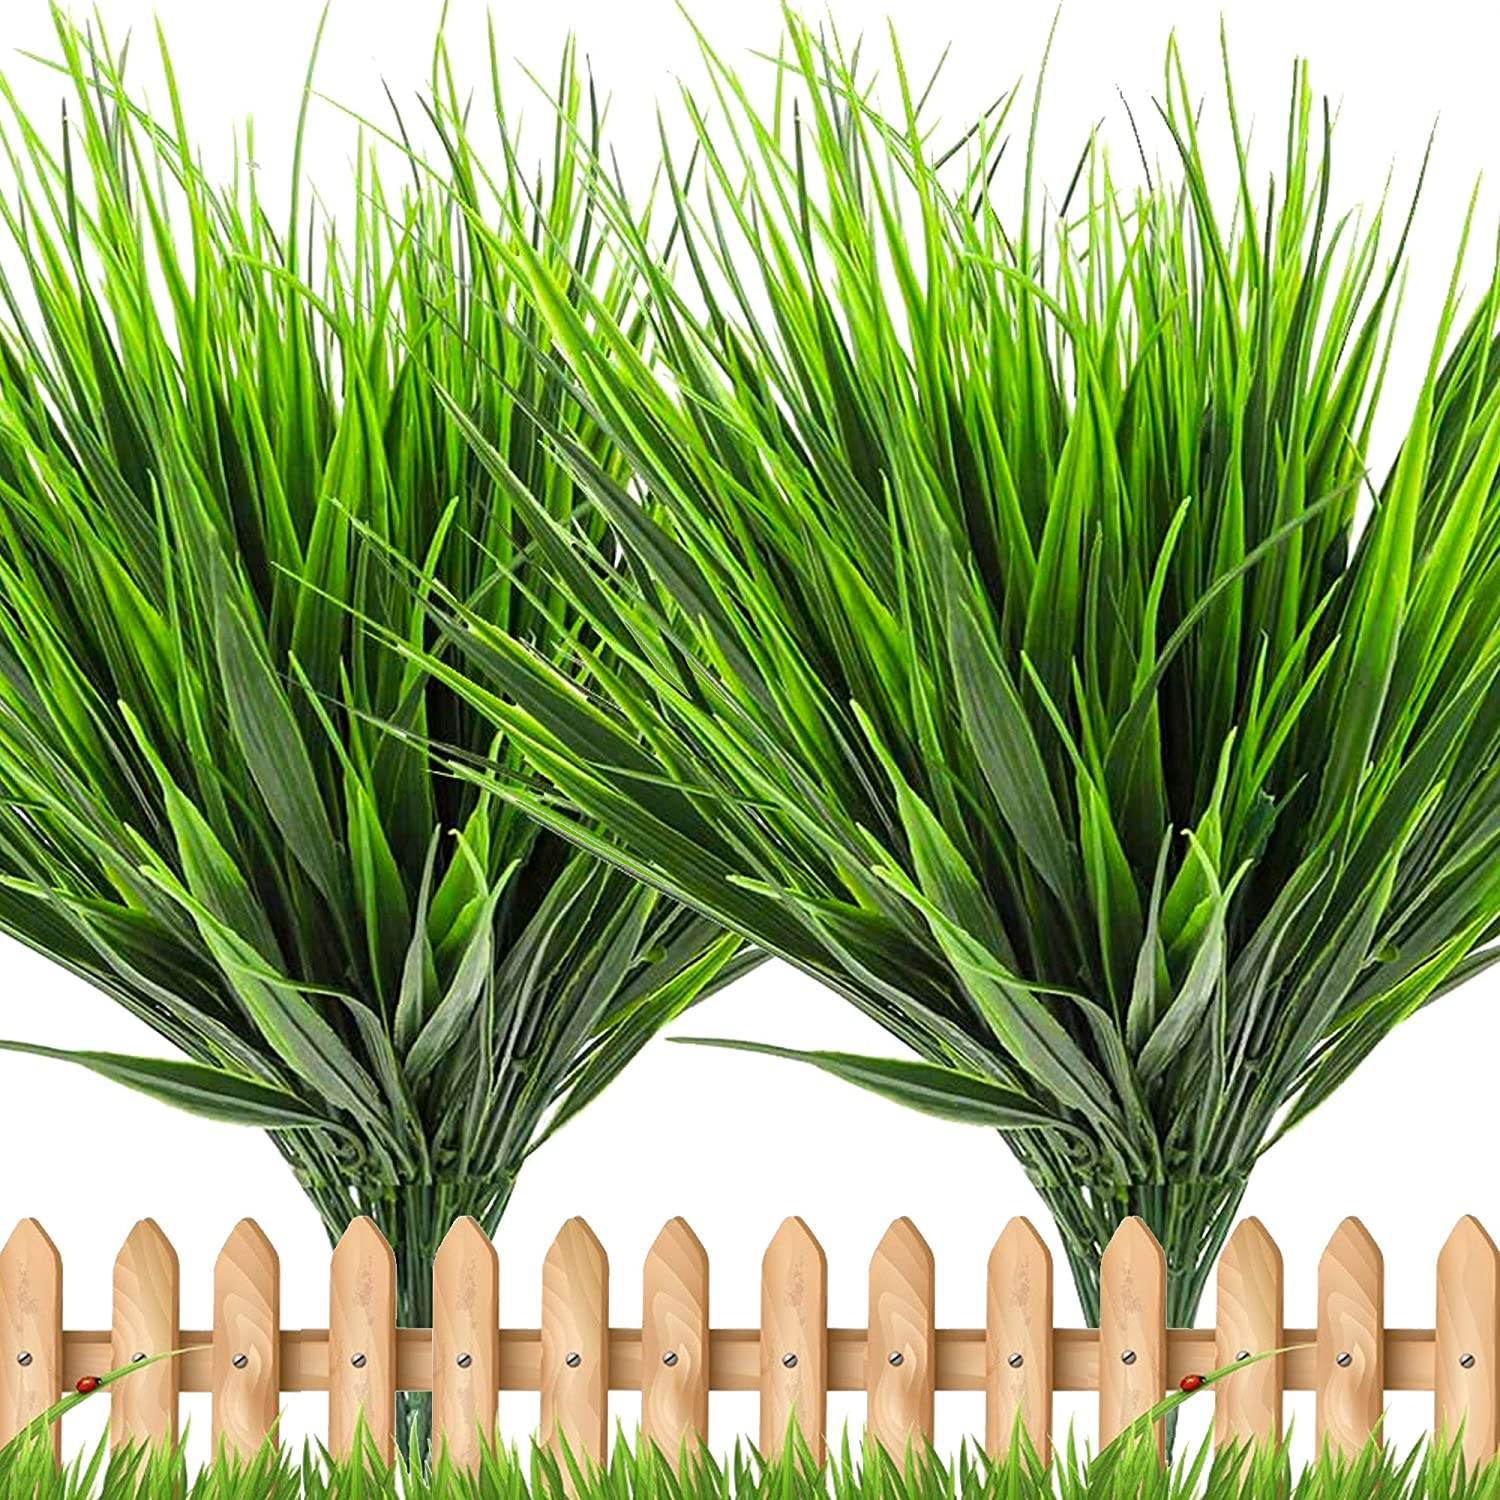 Artificial Wheat Fake Tall Grass - 10 Bundles Outdoor Plants Greenery Flowers UV Resistant Faux Plastic Shrubs Stems for Home Garden Porch Patio Decorations Office Indoor Restaurants (Green Grass)